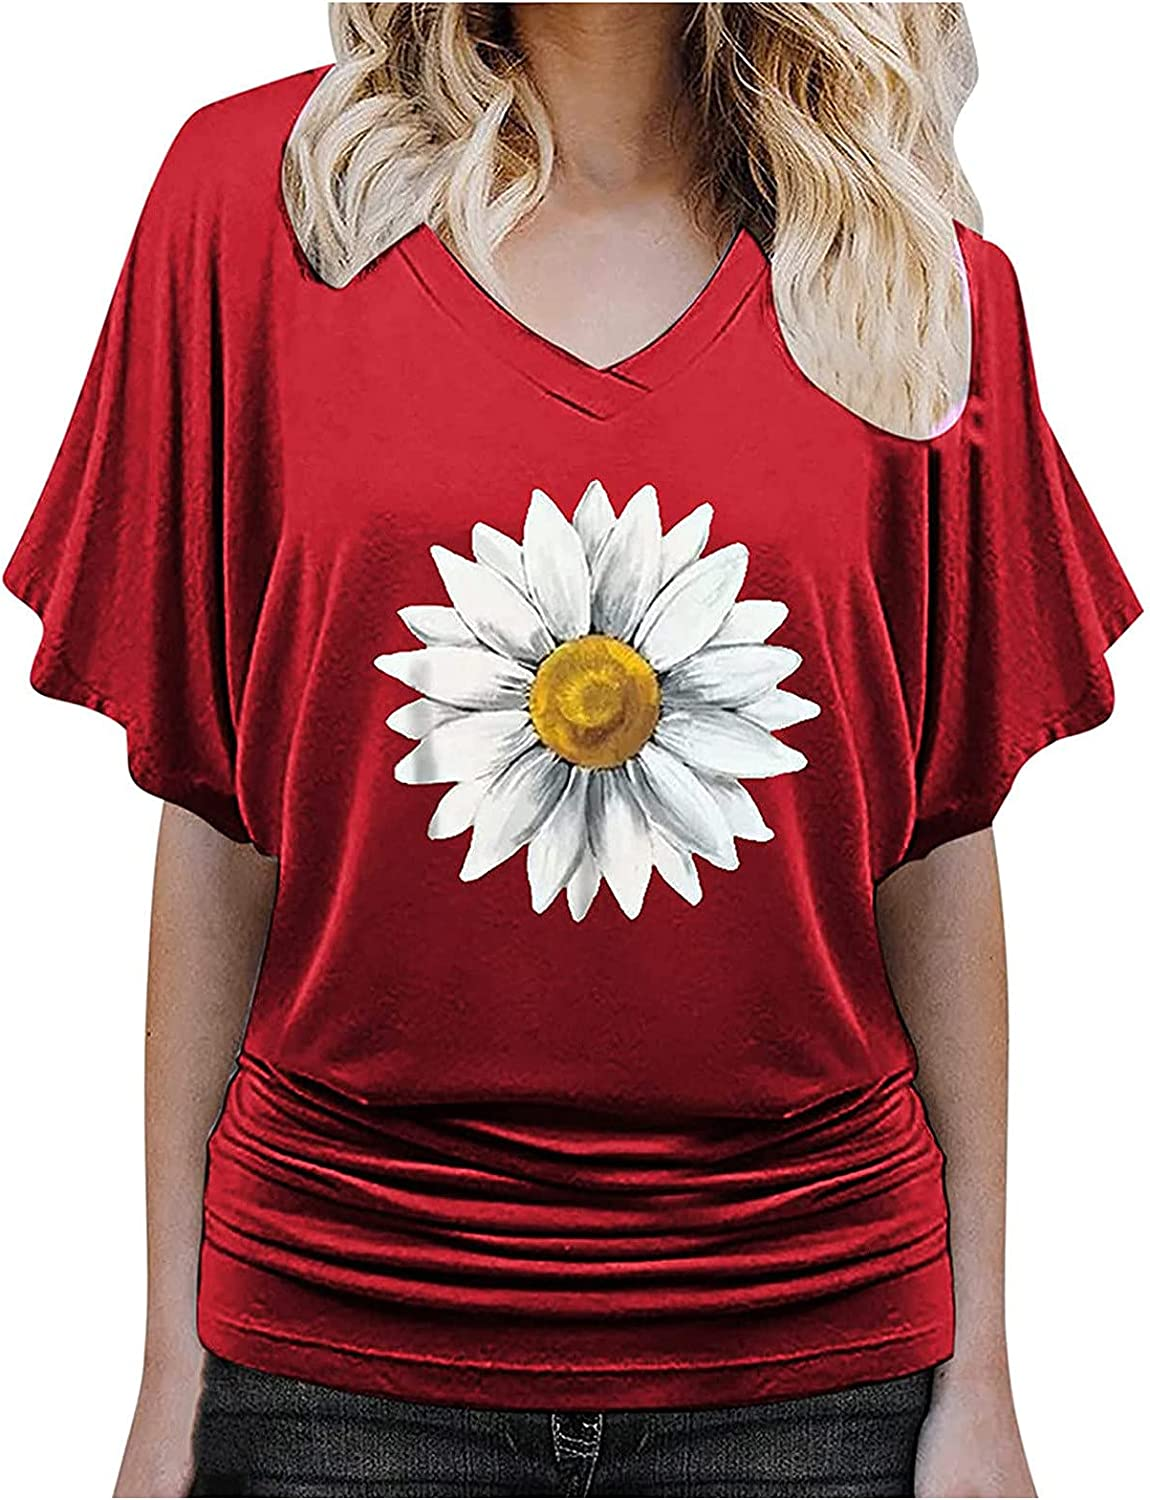 Women's Short Sleeve Tunic Tops Graphics V-Neck Loose T Shirts Short Sleeve Casual Pullover Tee Tops